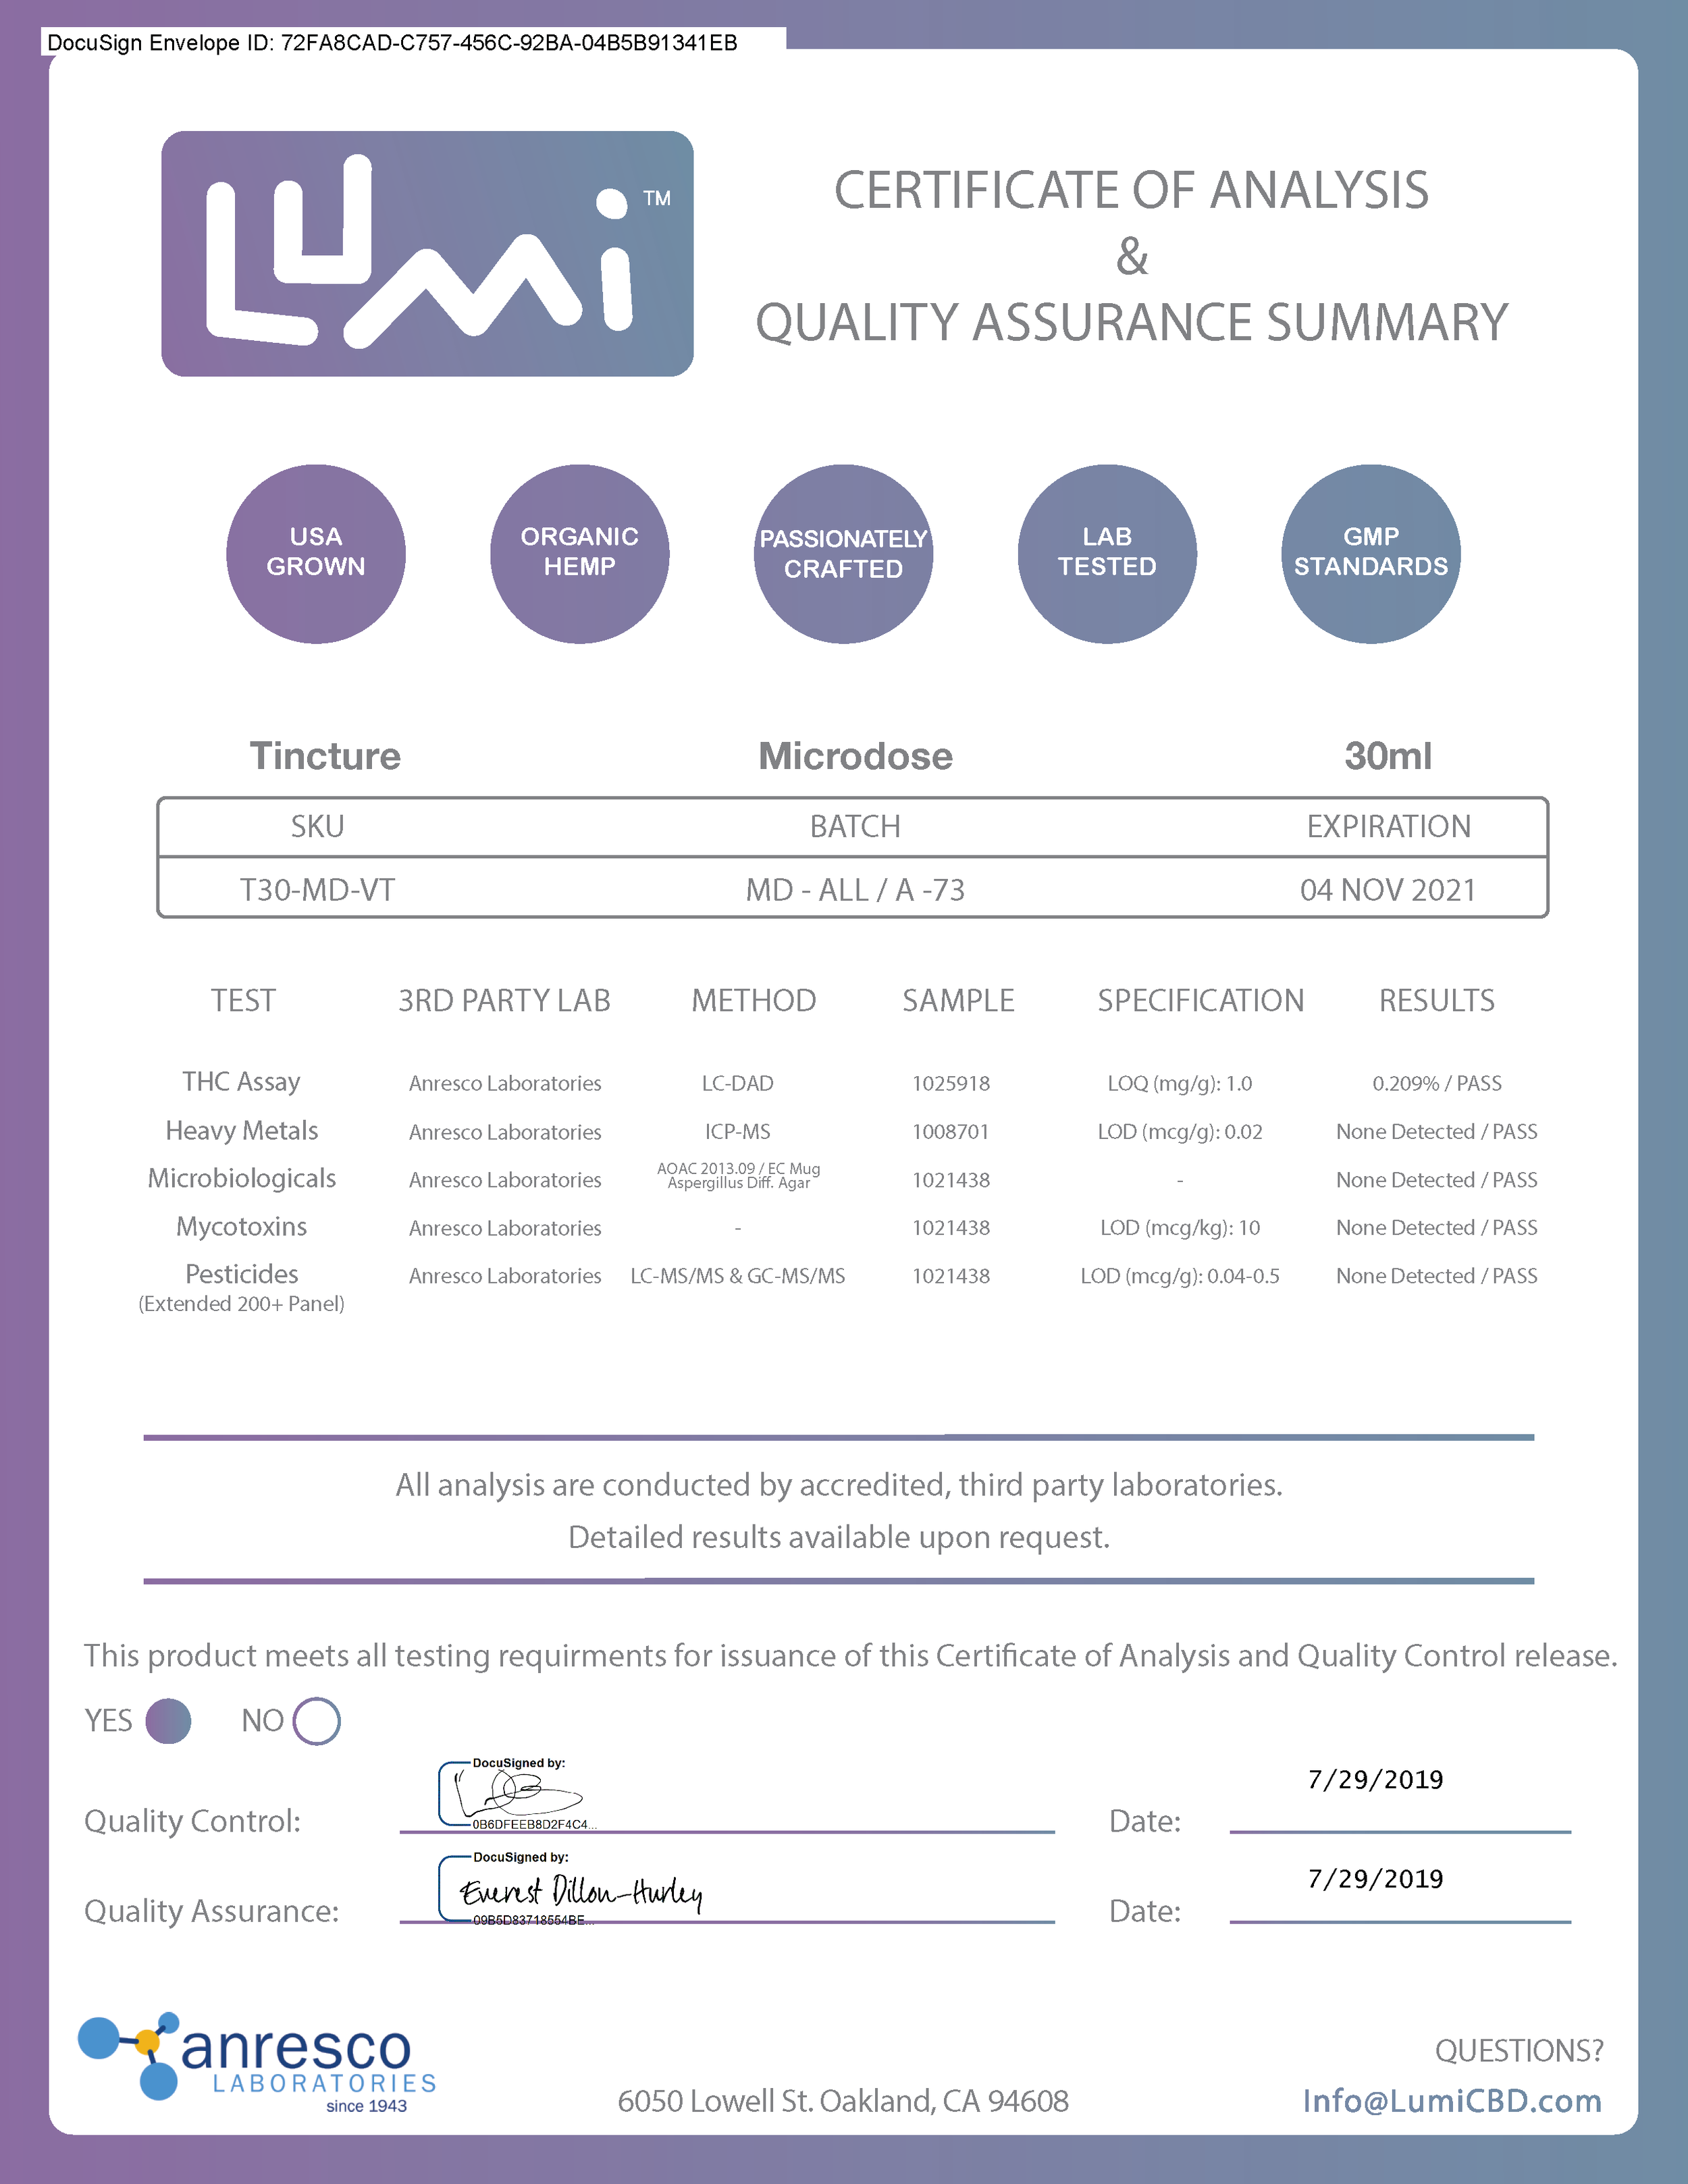 Lumi - COA & Quality Assurance Summary (Tincture - Microdose) copy.png